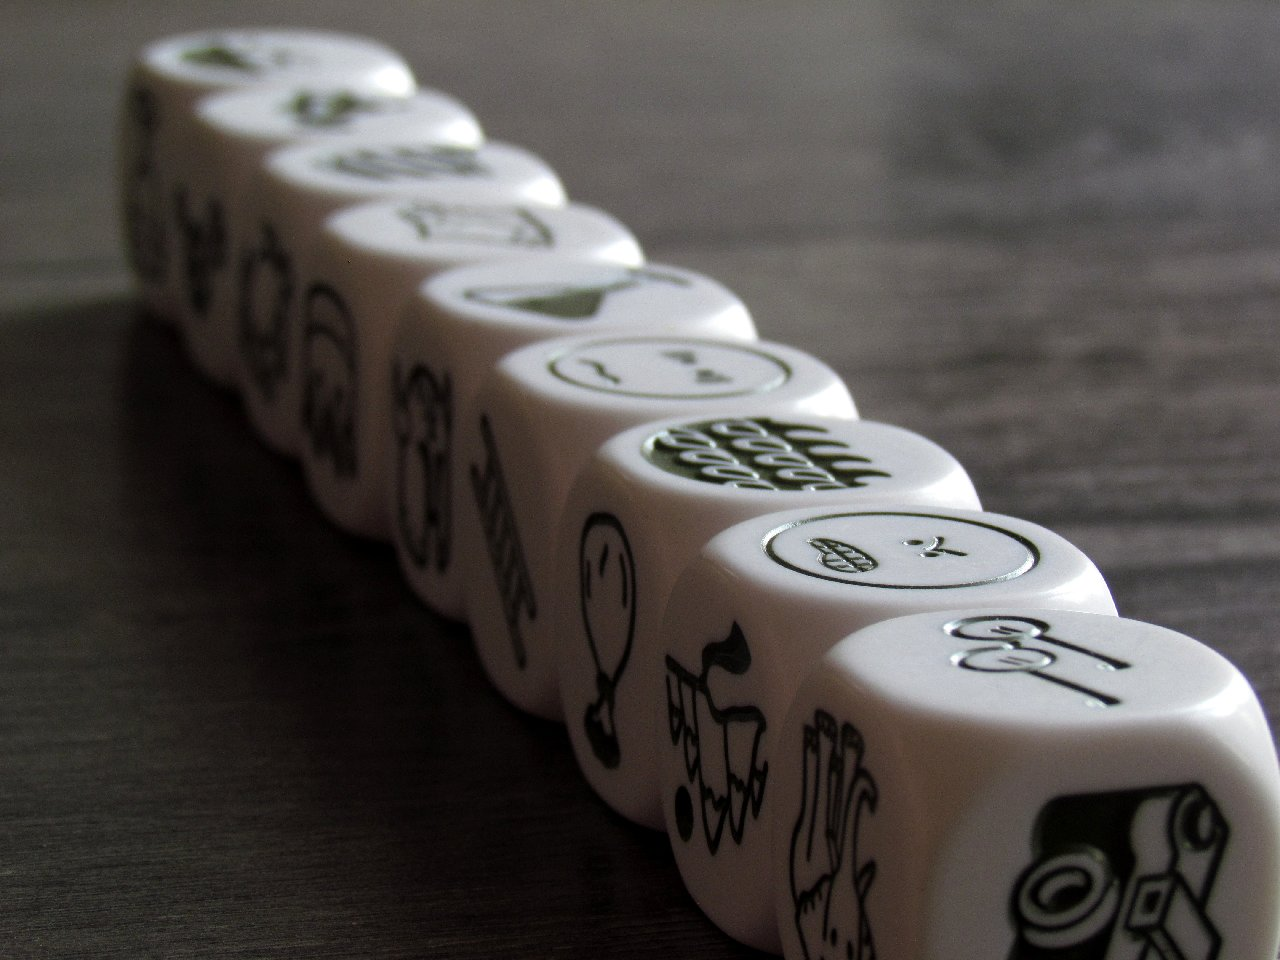 rorys-story-cubes-voyages-max-05